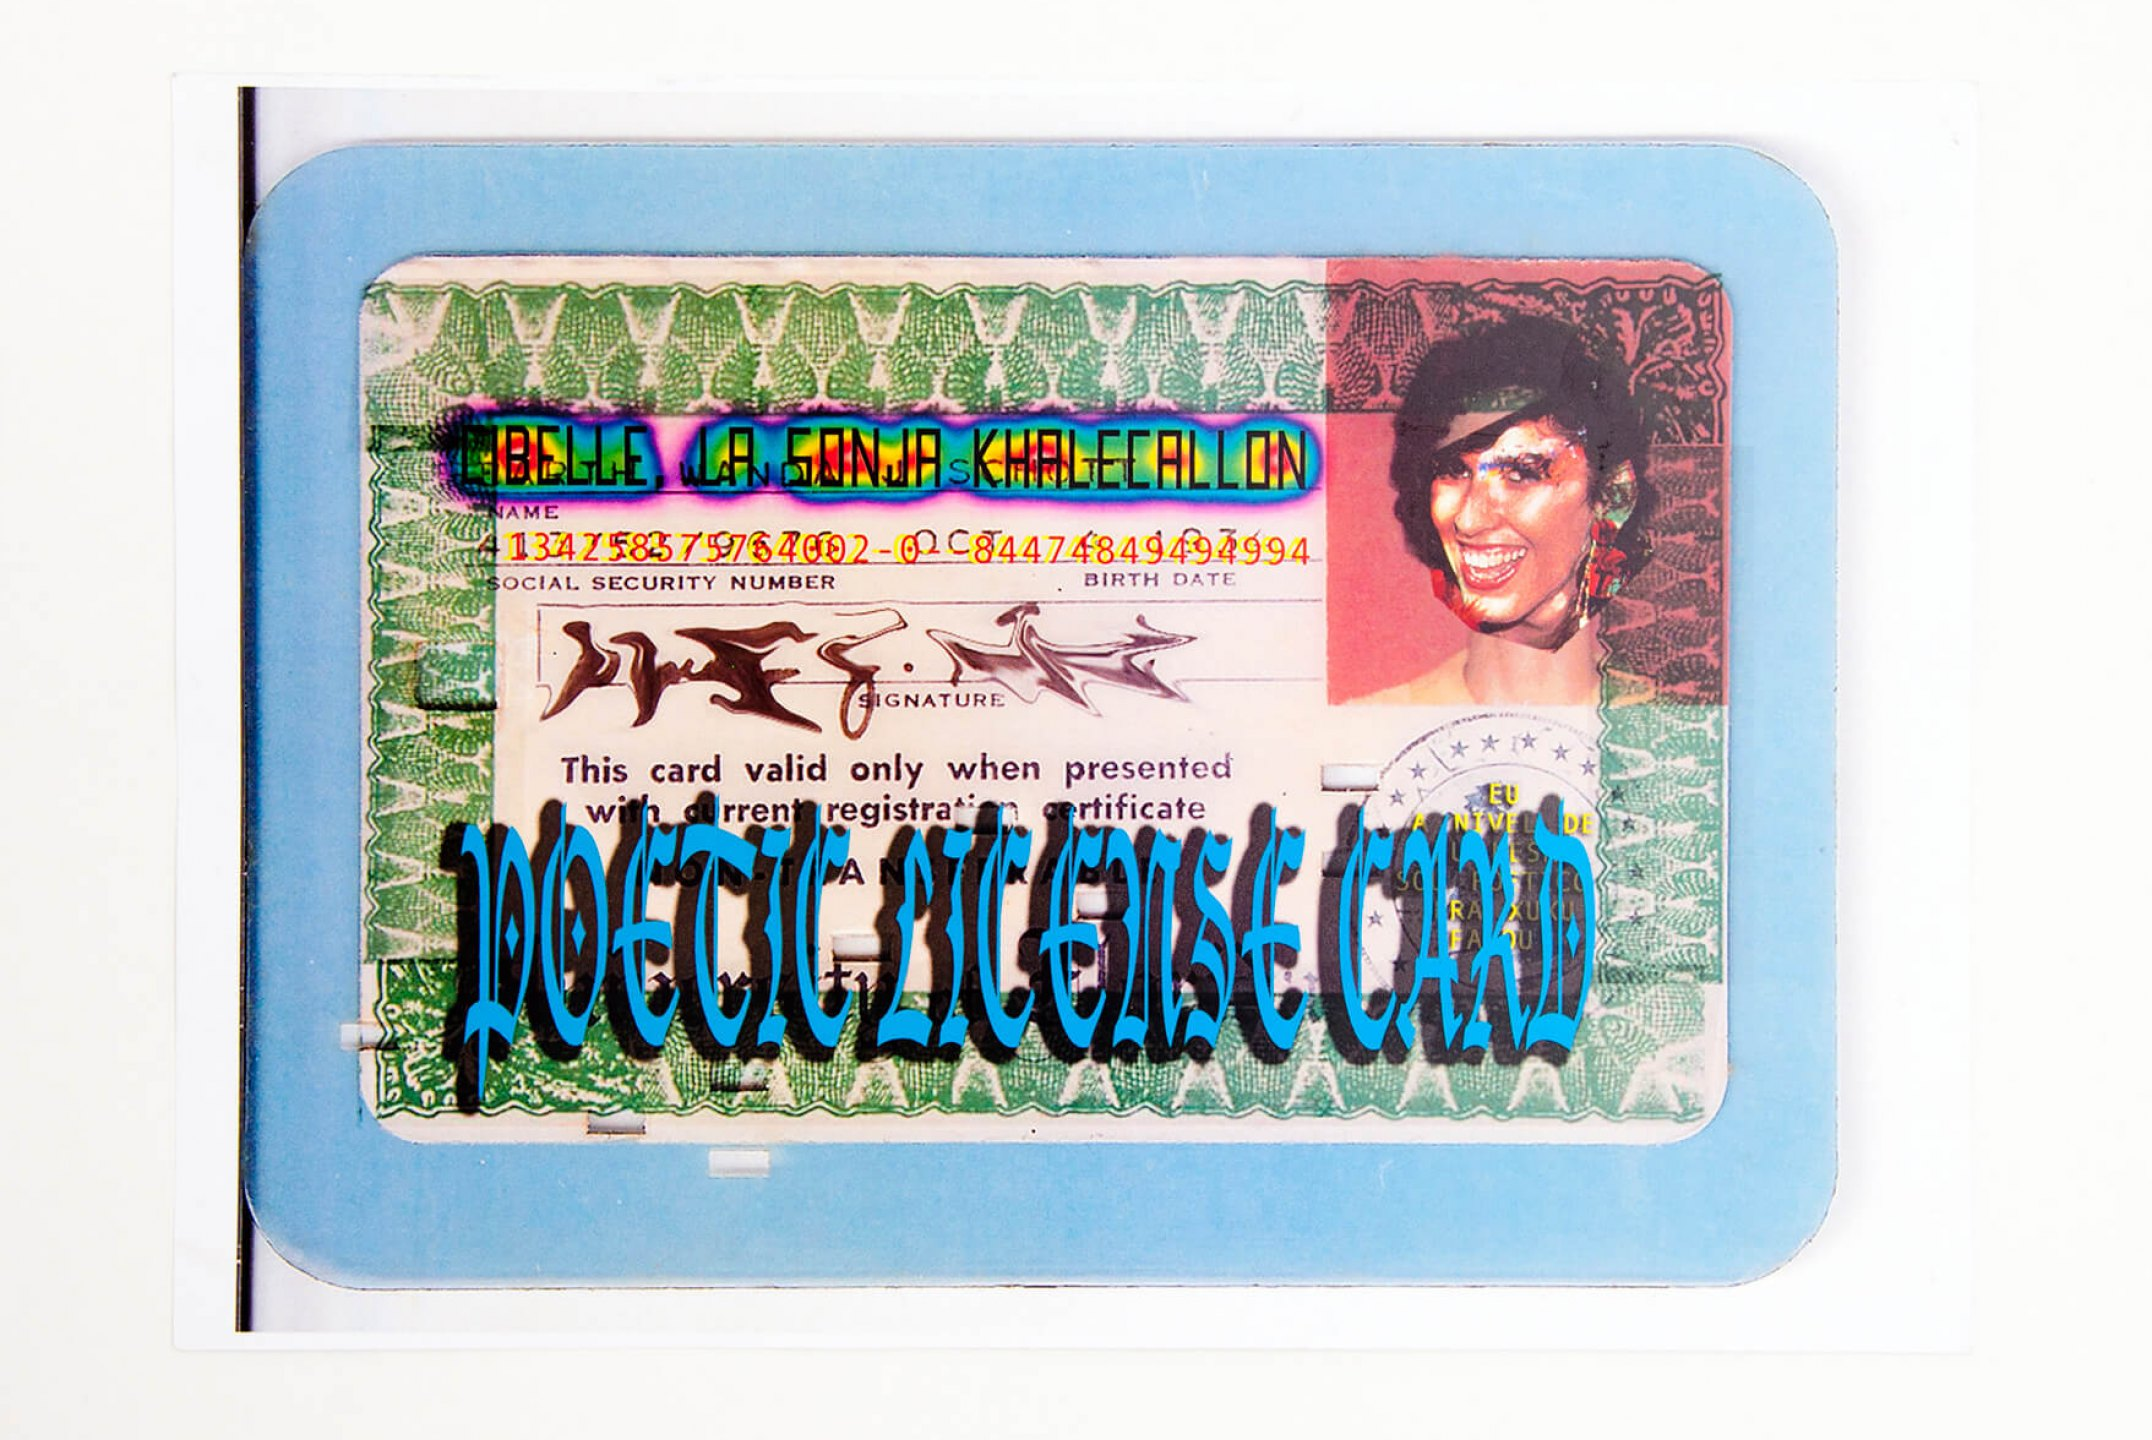 Cibelle Cavalli Bastos, <em>Poetic license card</em>, 2010, mixed media, 21 × 30 cm - Mendes Wood DM